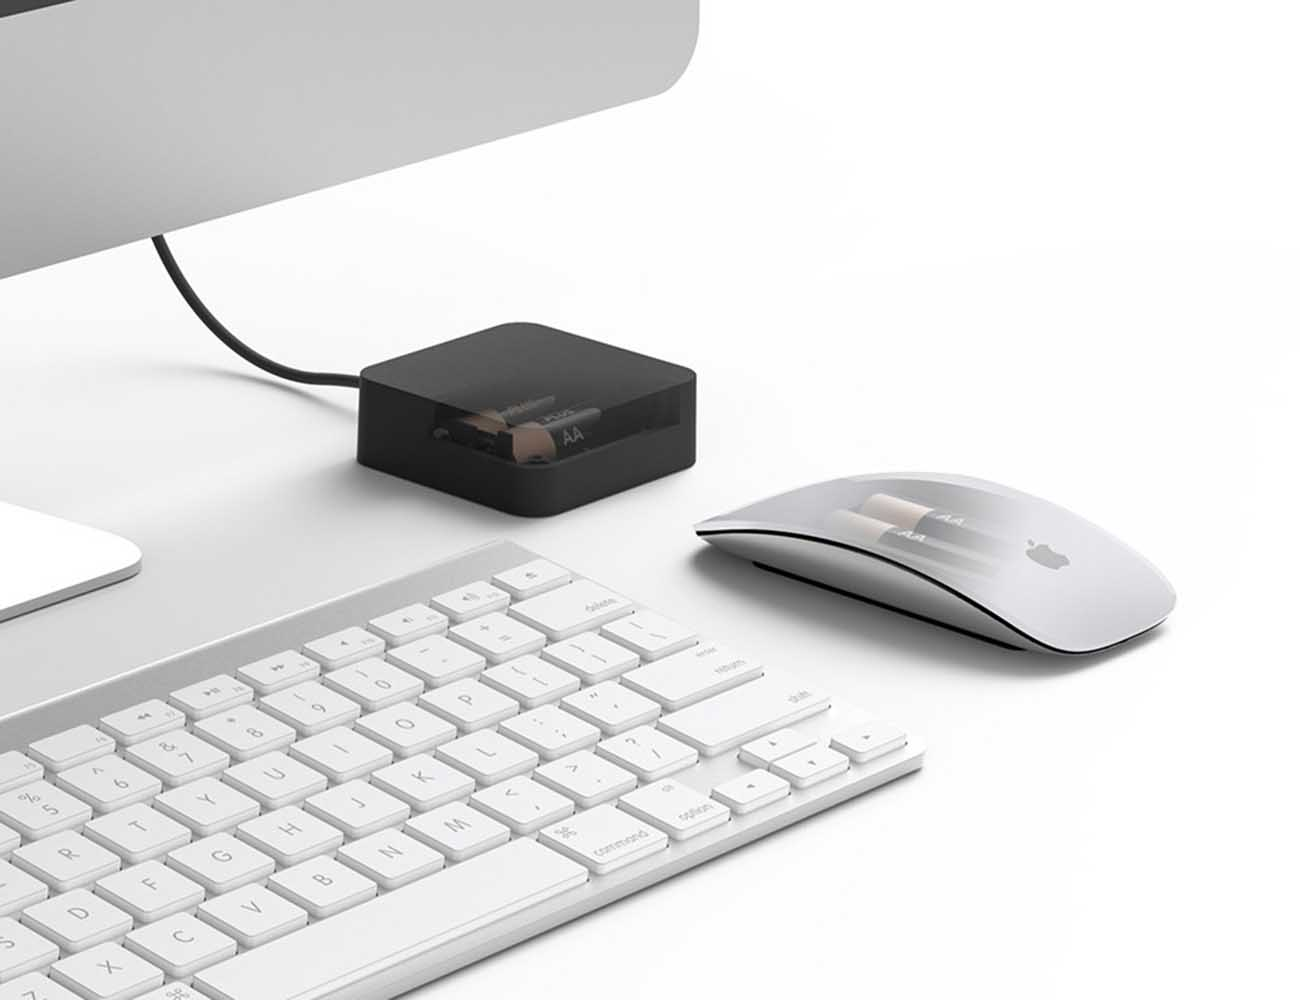 Aaden by Bluelounge – USB powered charger For Your Keyboard and Mouse